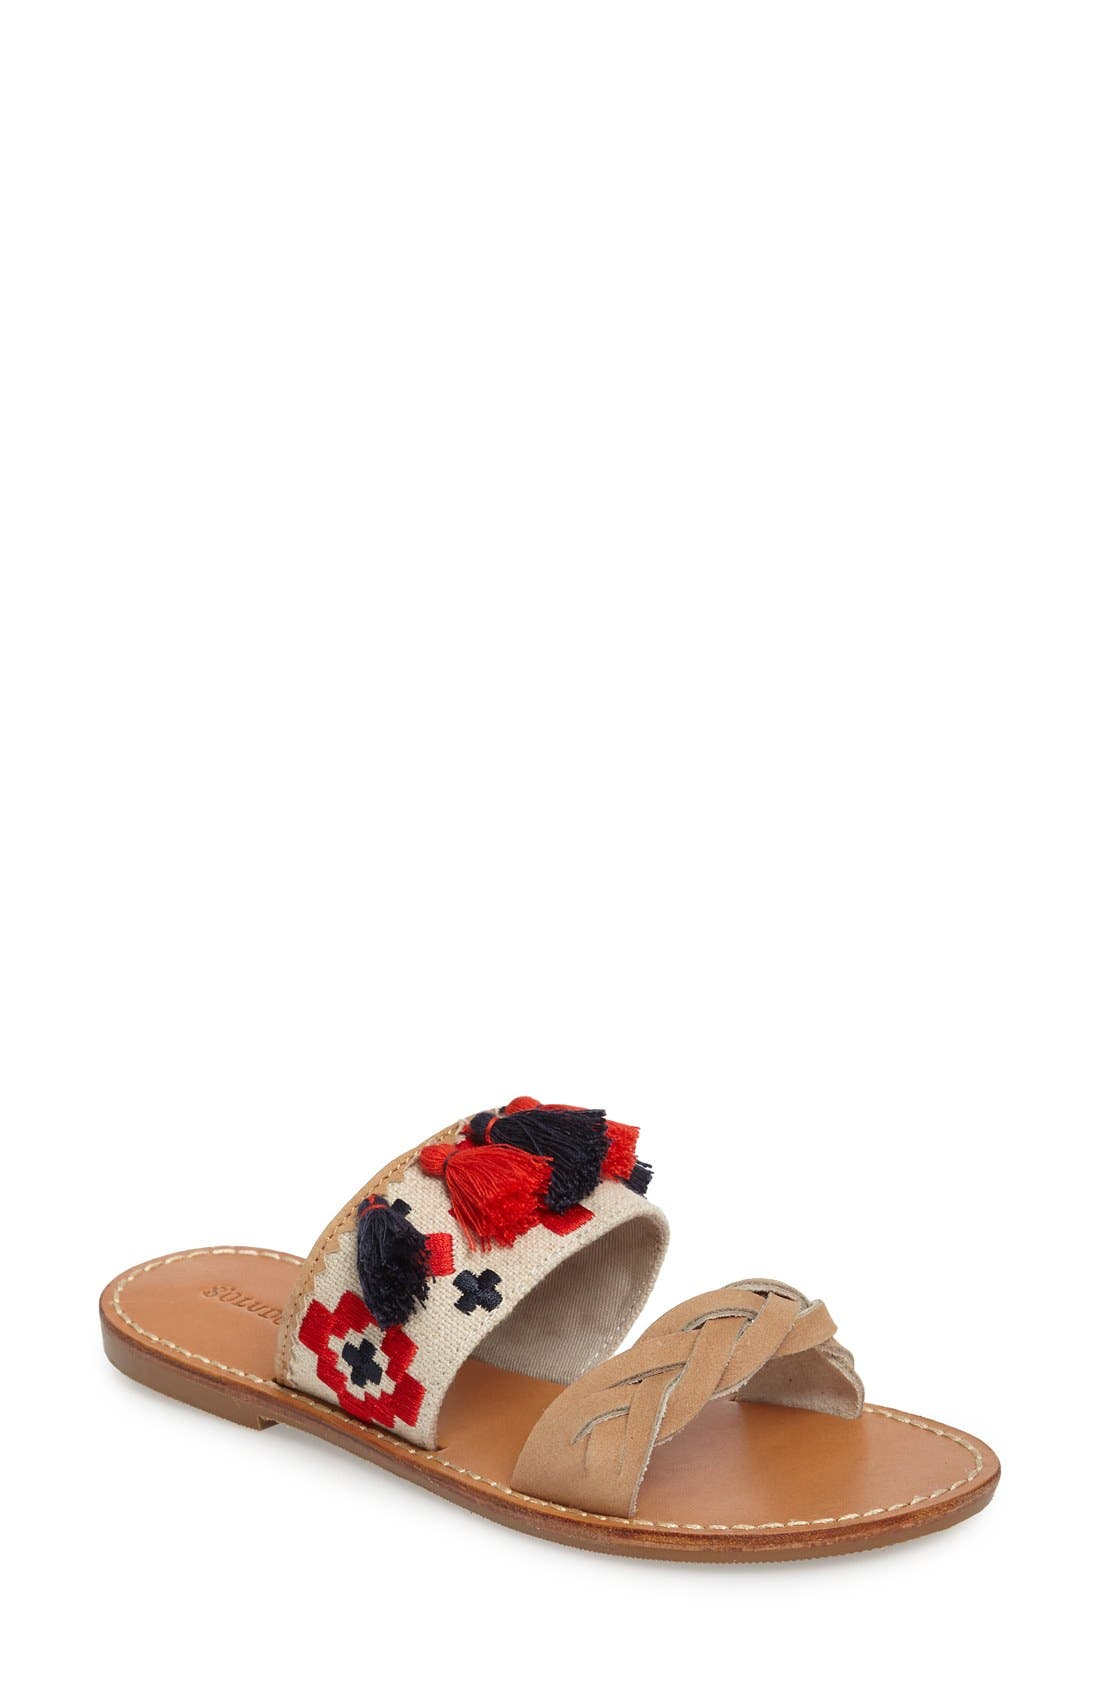 Soludus Embroidered Slide Sandal (Women)